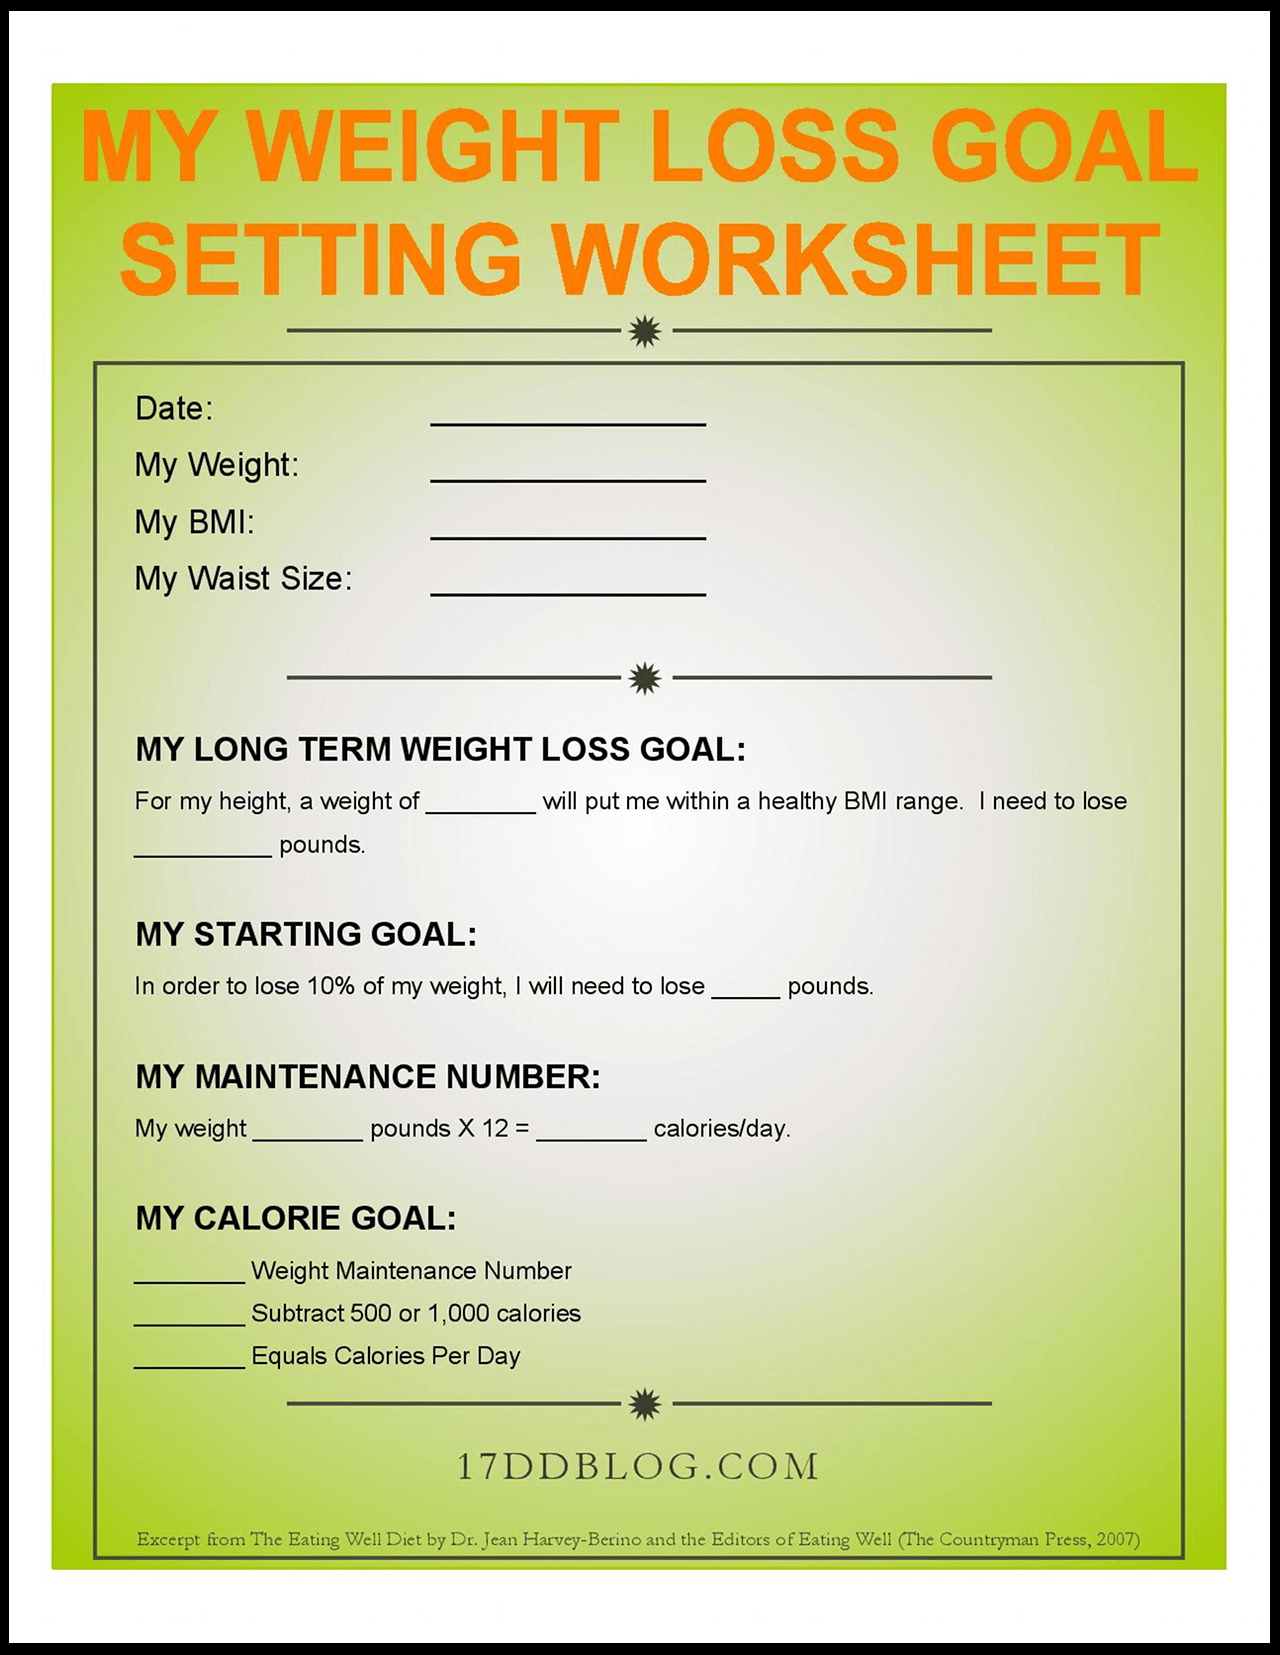 My Weight Loss Goal Setting Worksheet Free Download